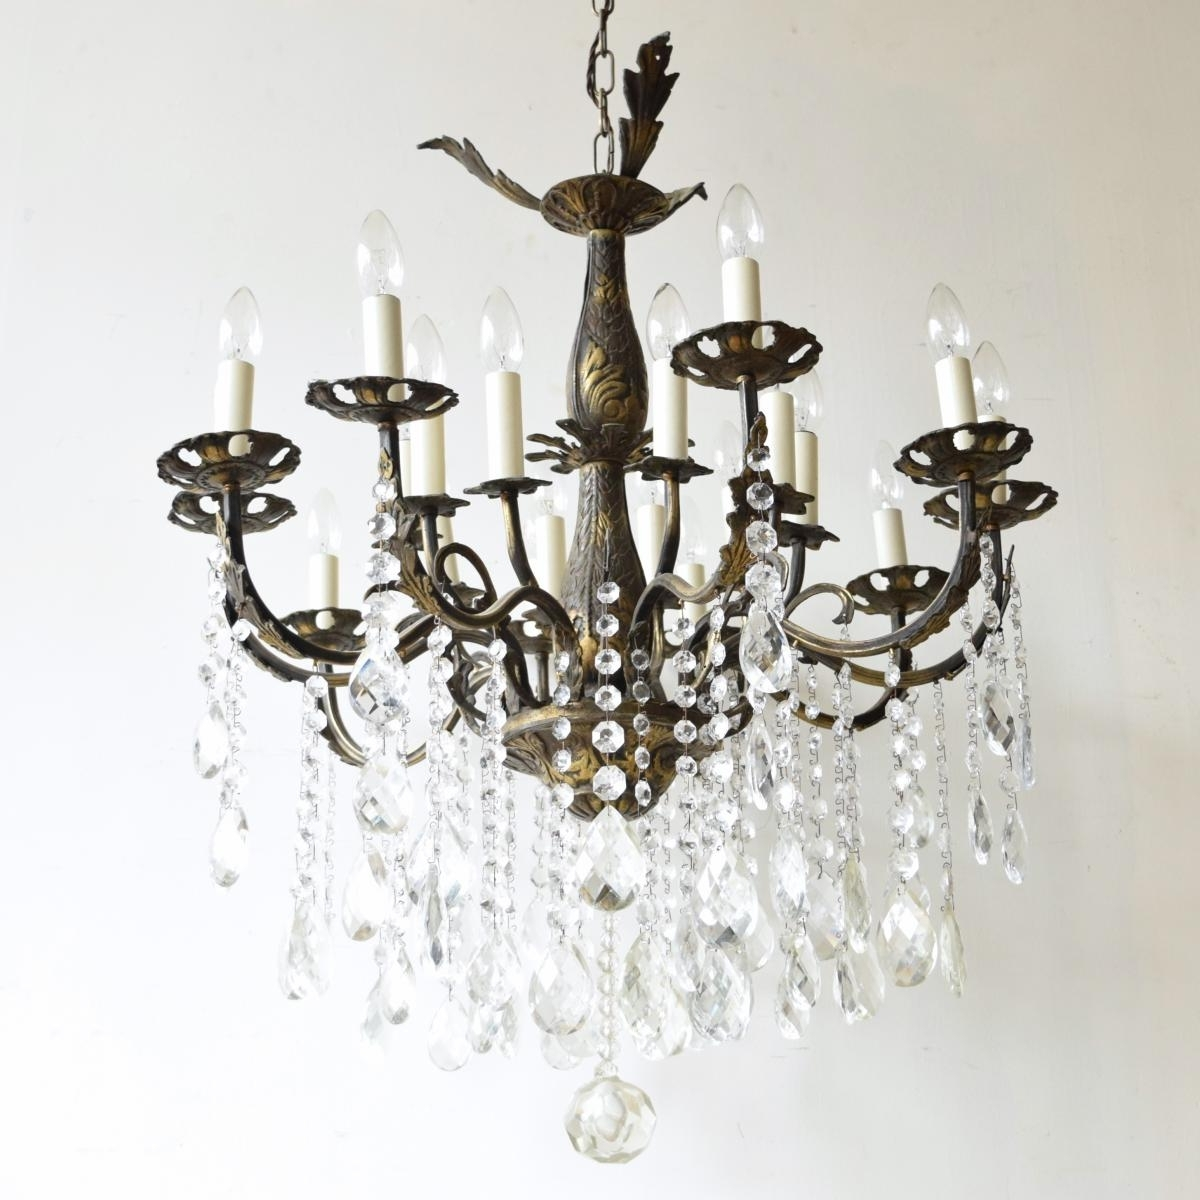 Latest Large Vintage French 16 Light Brass Chandelier For Sale At Pamono Pertaining To Large Brass Chandelier (View 13 of 20)